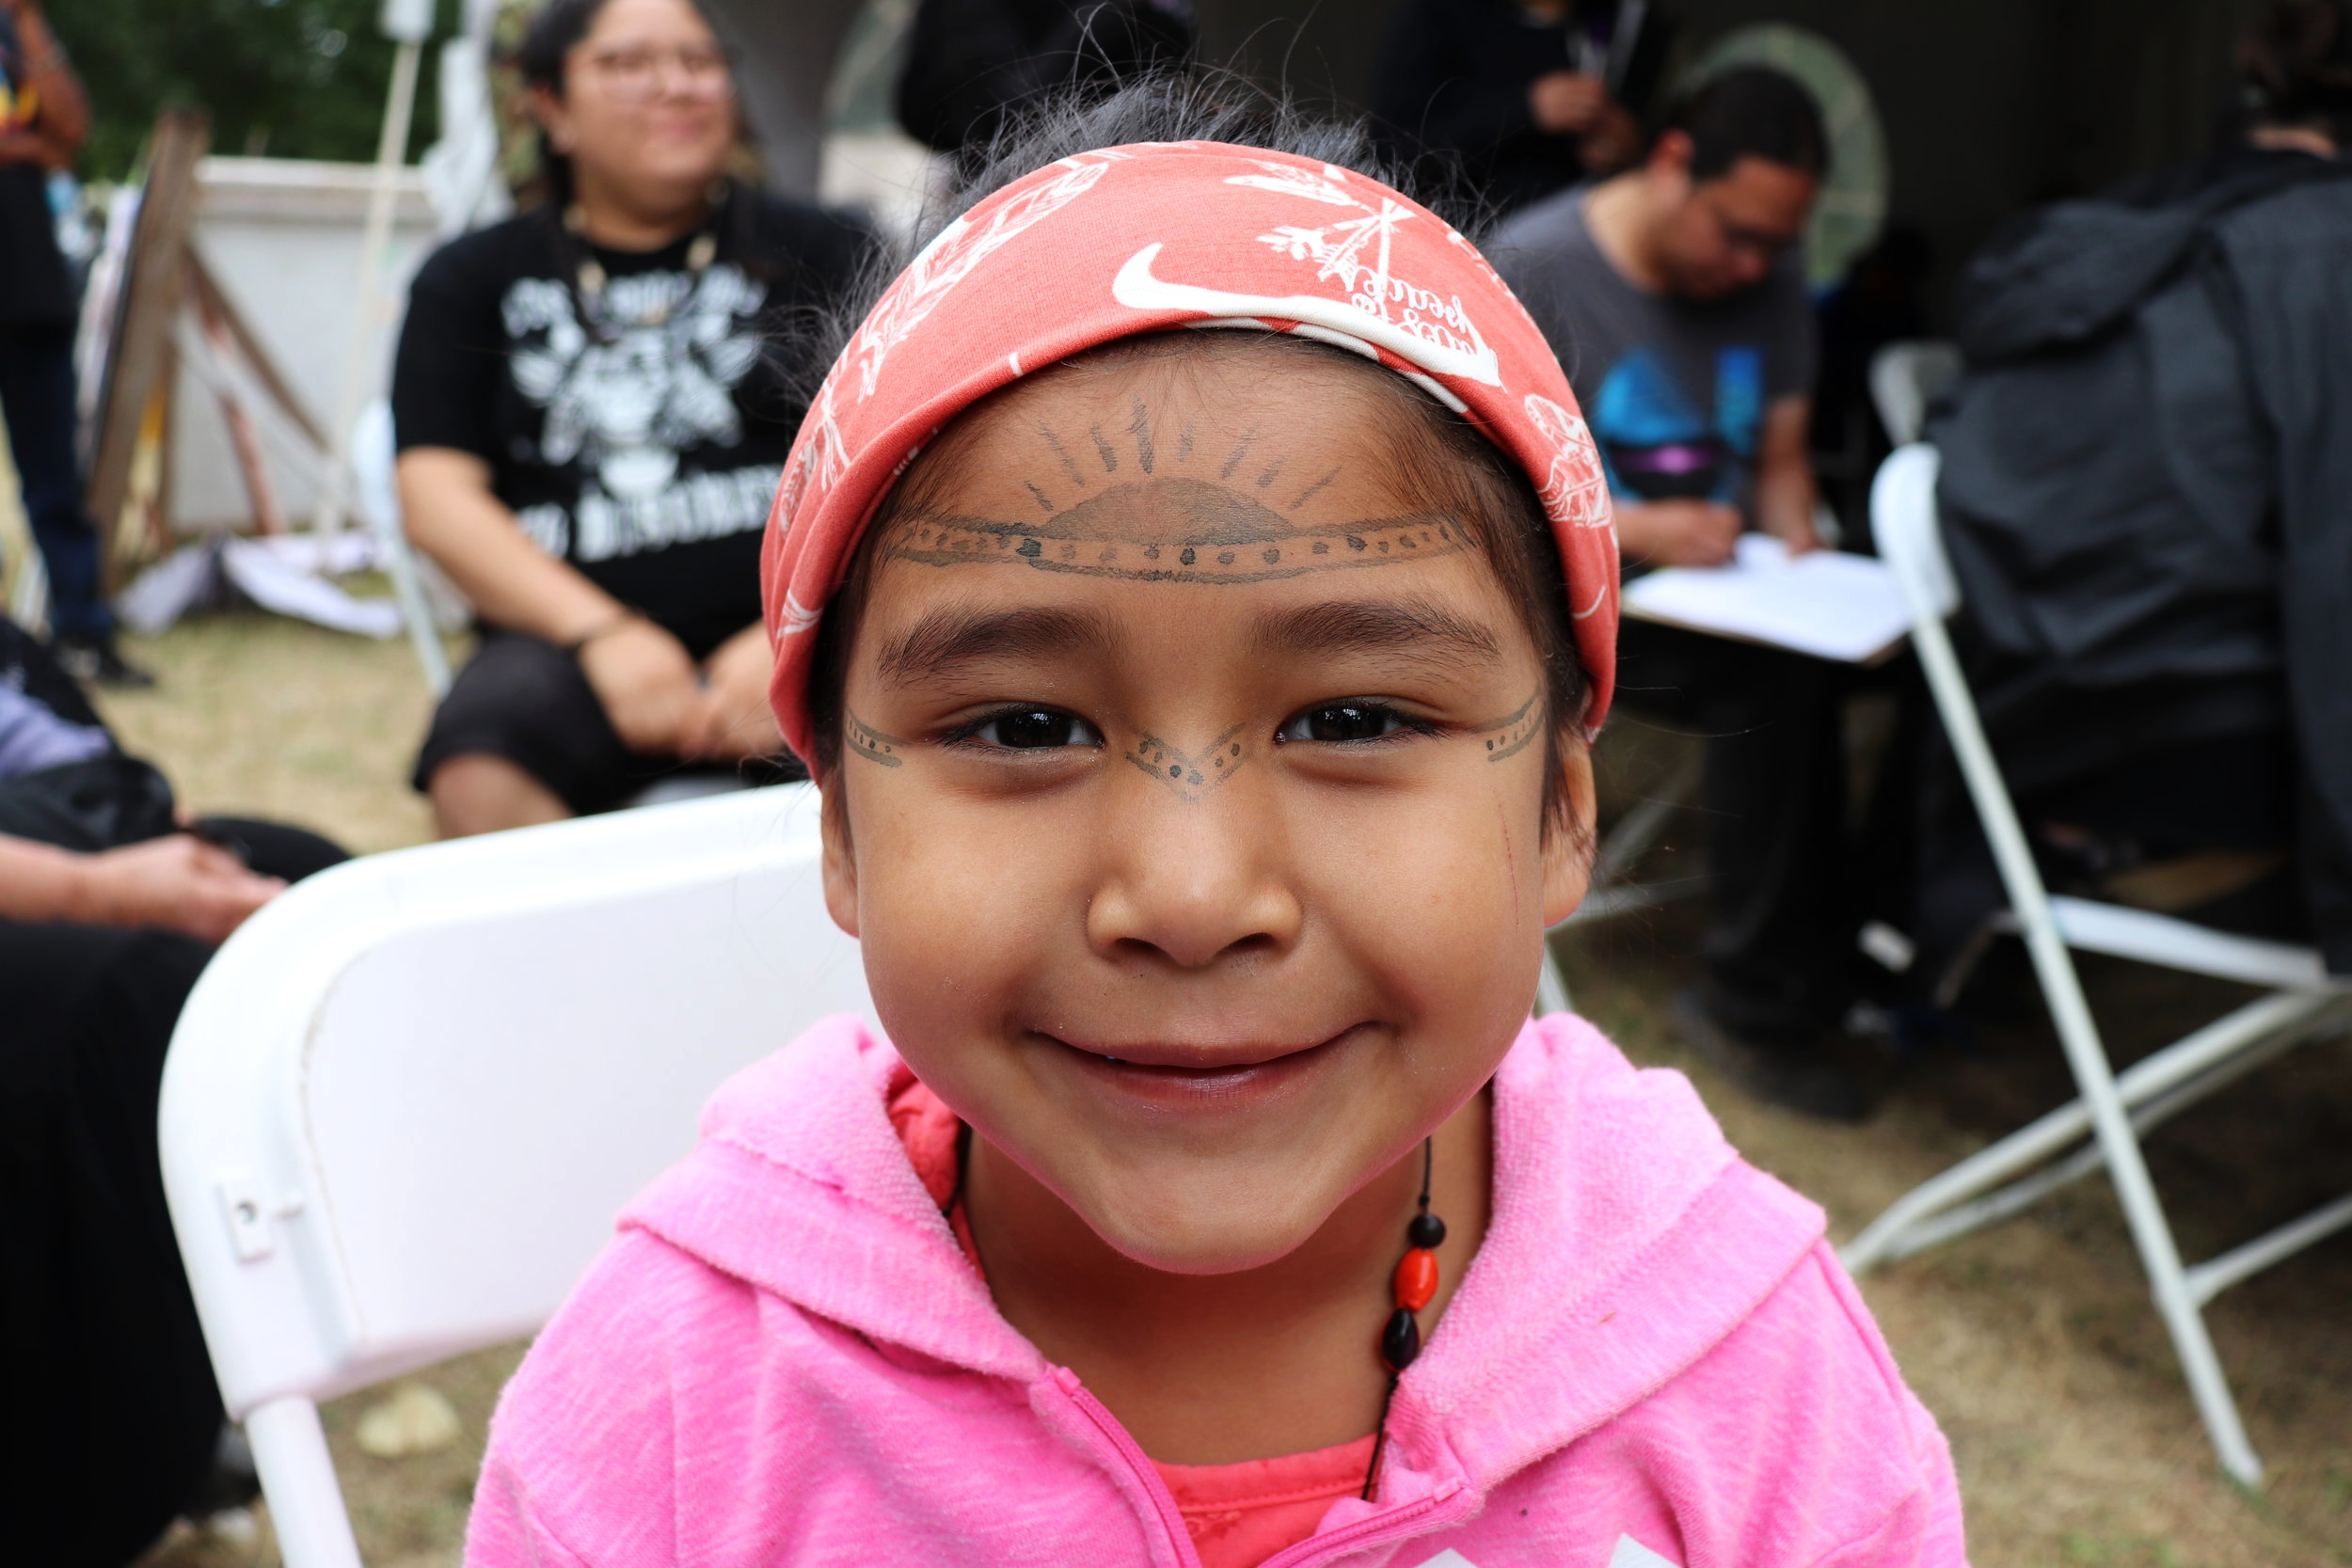 Young girl gets painted by member of the Federation of the Huni Kui tribe of the Brazilian Amazon rainforest.